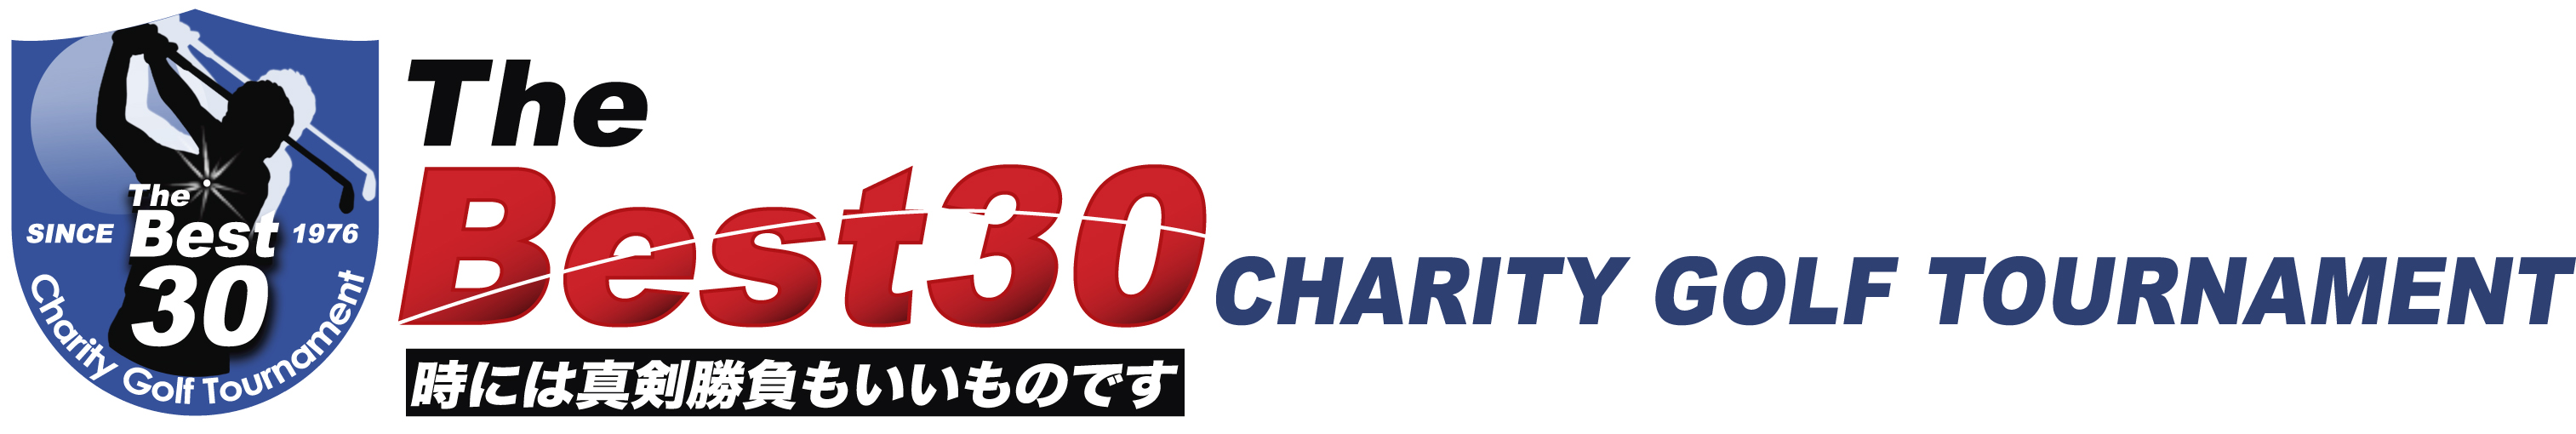 Best 30 Charity Golf logo